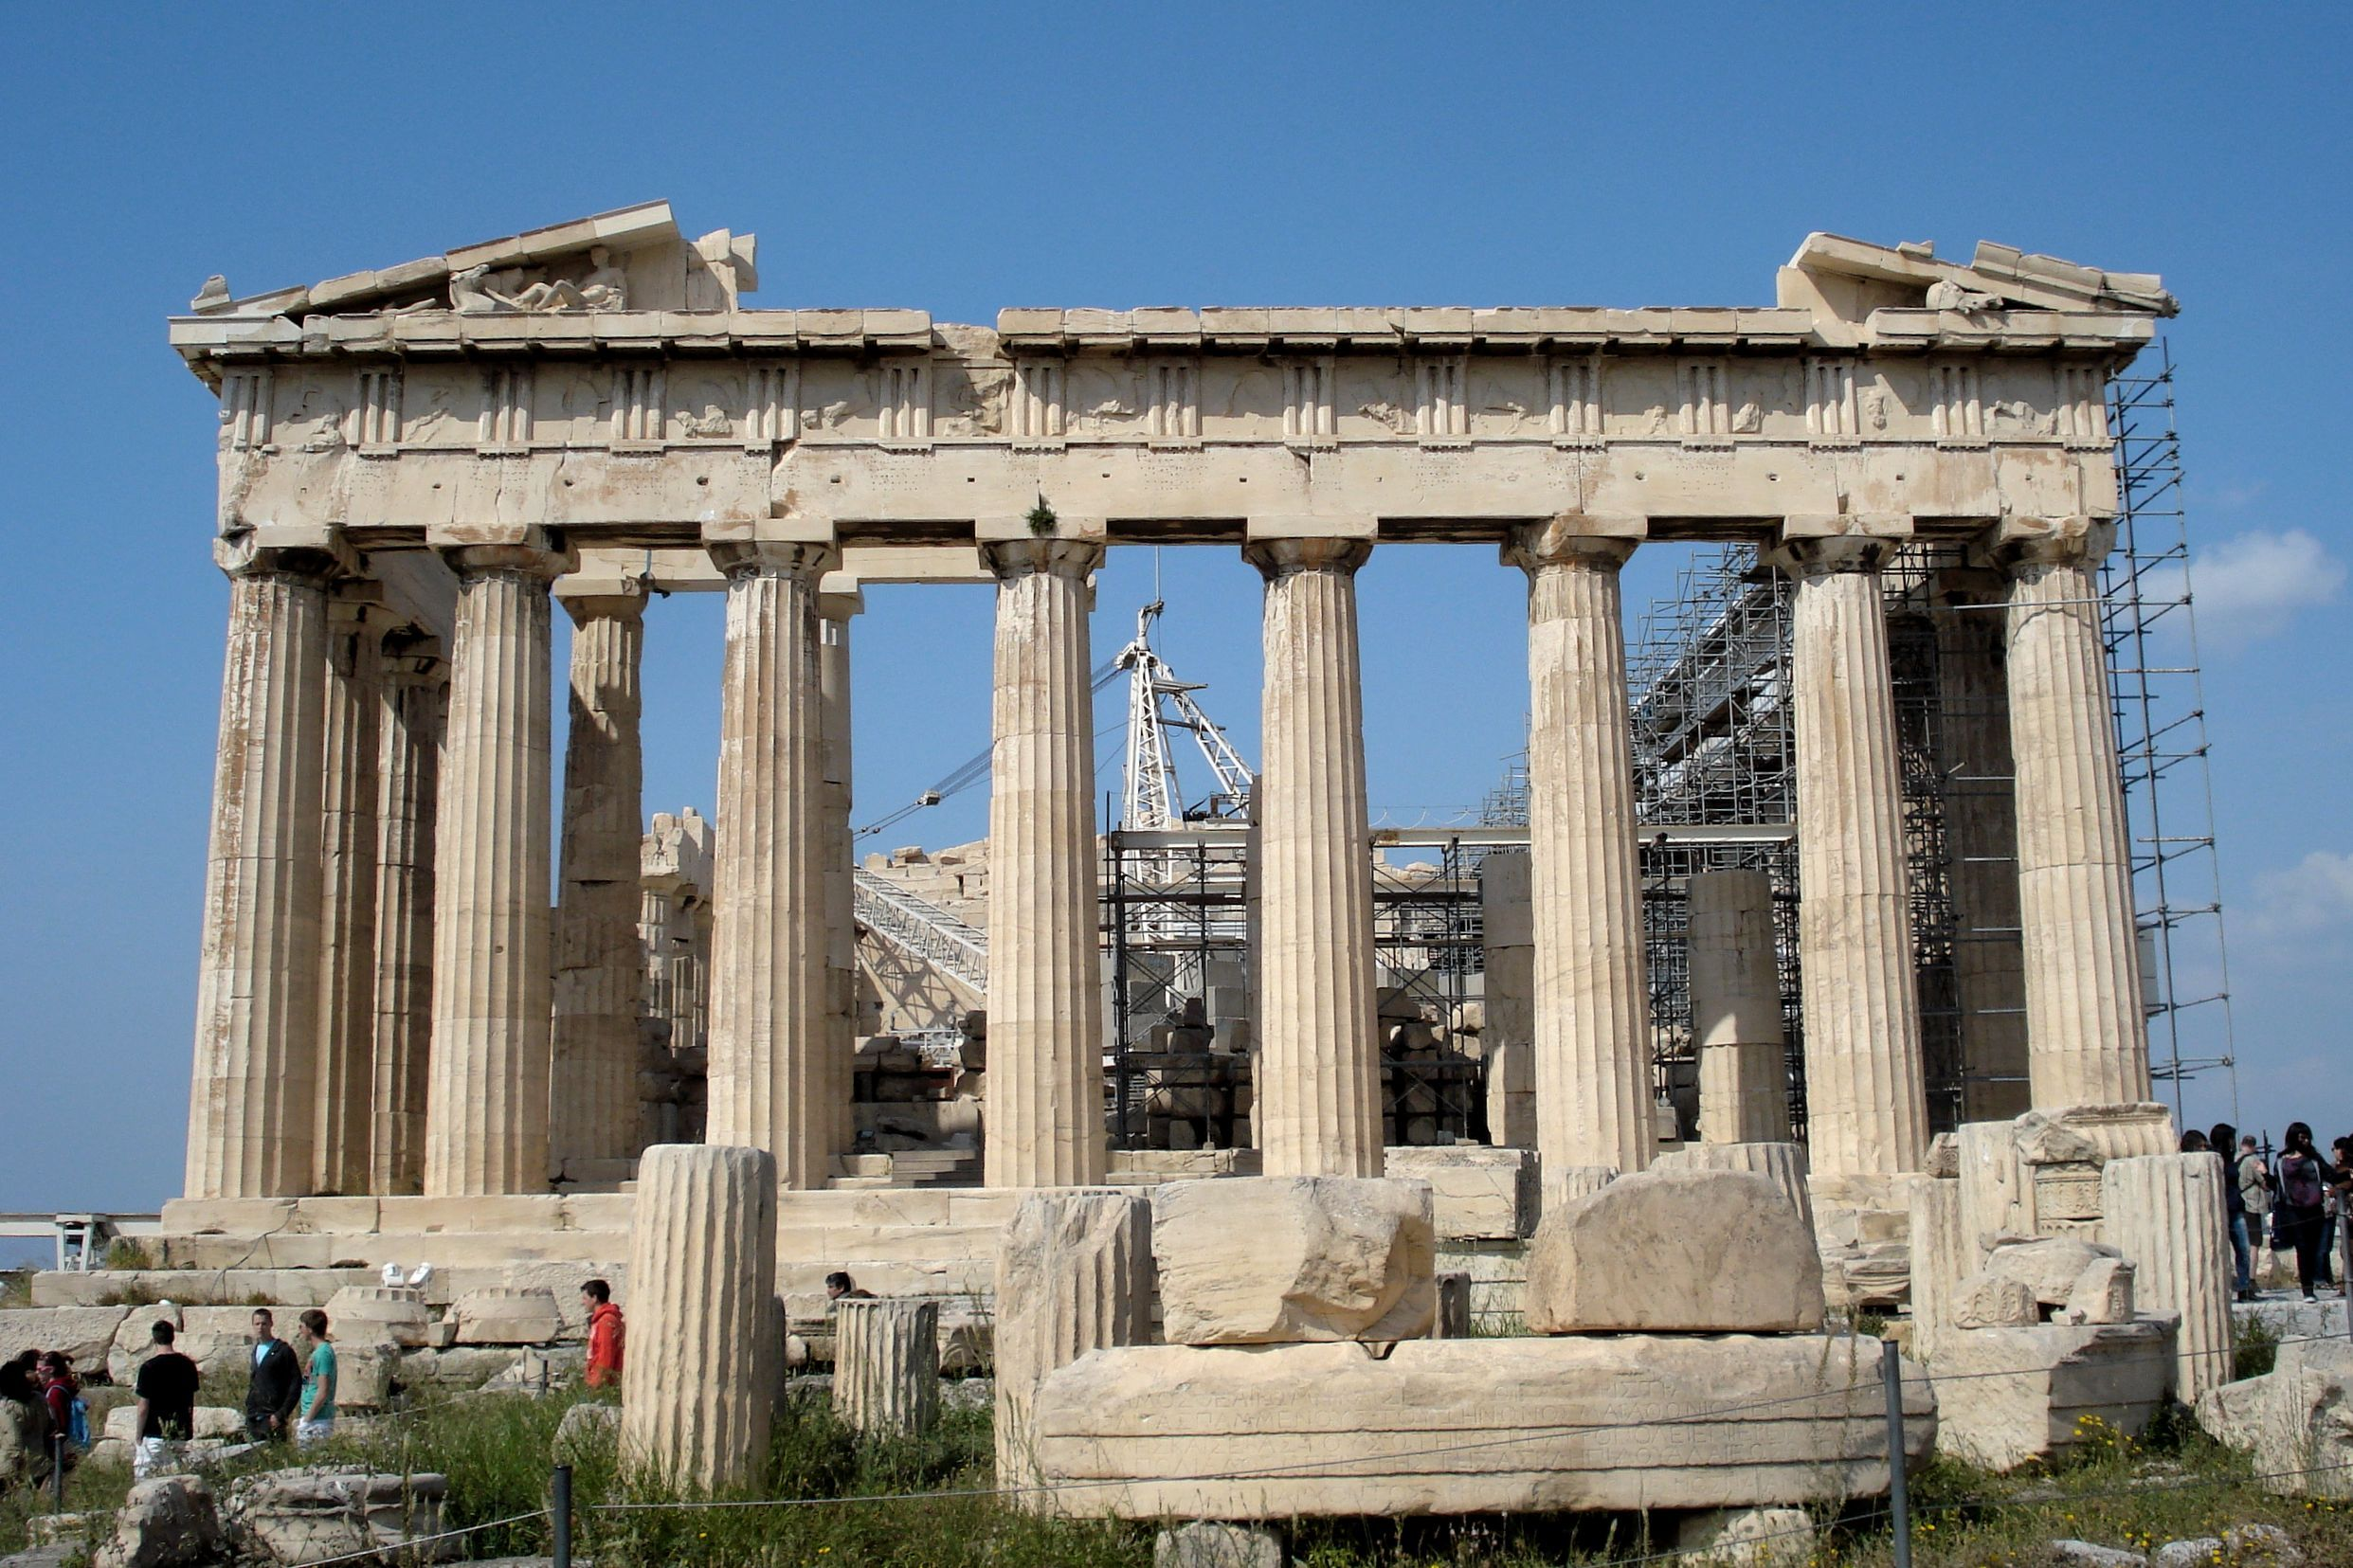 Classical Period Of Greece 480 323 Bc Parthenon Acropolis Athens C 447 438 Bc The Parthenon Is One Of Parthenon Ancient Greece Classical Architecture